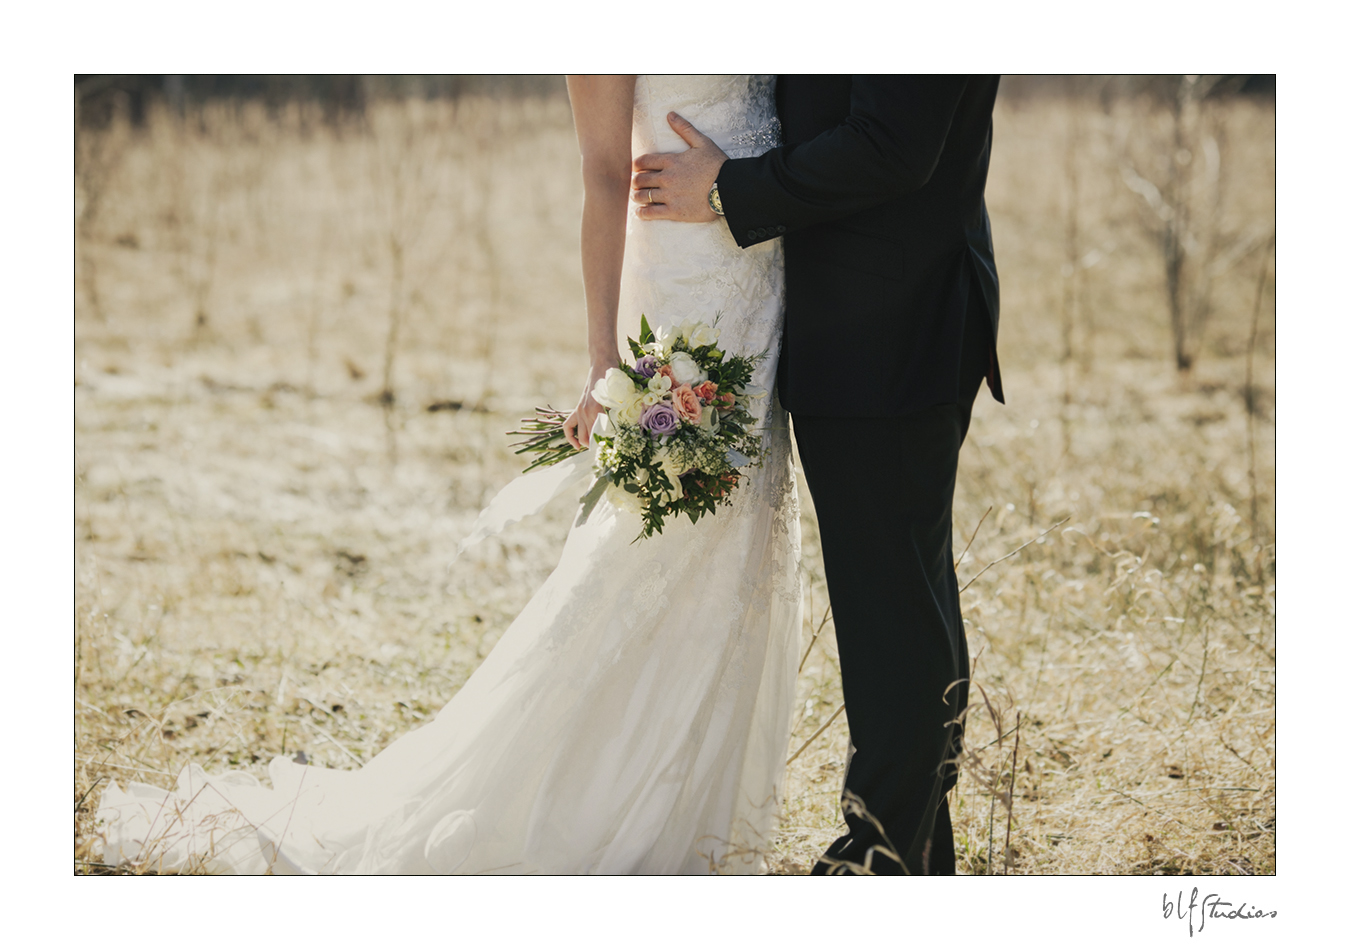 0018rimma-tyler--blfStudios-pineridgehollow-wedding.jpg